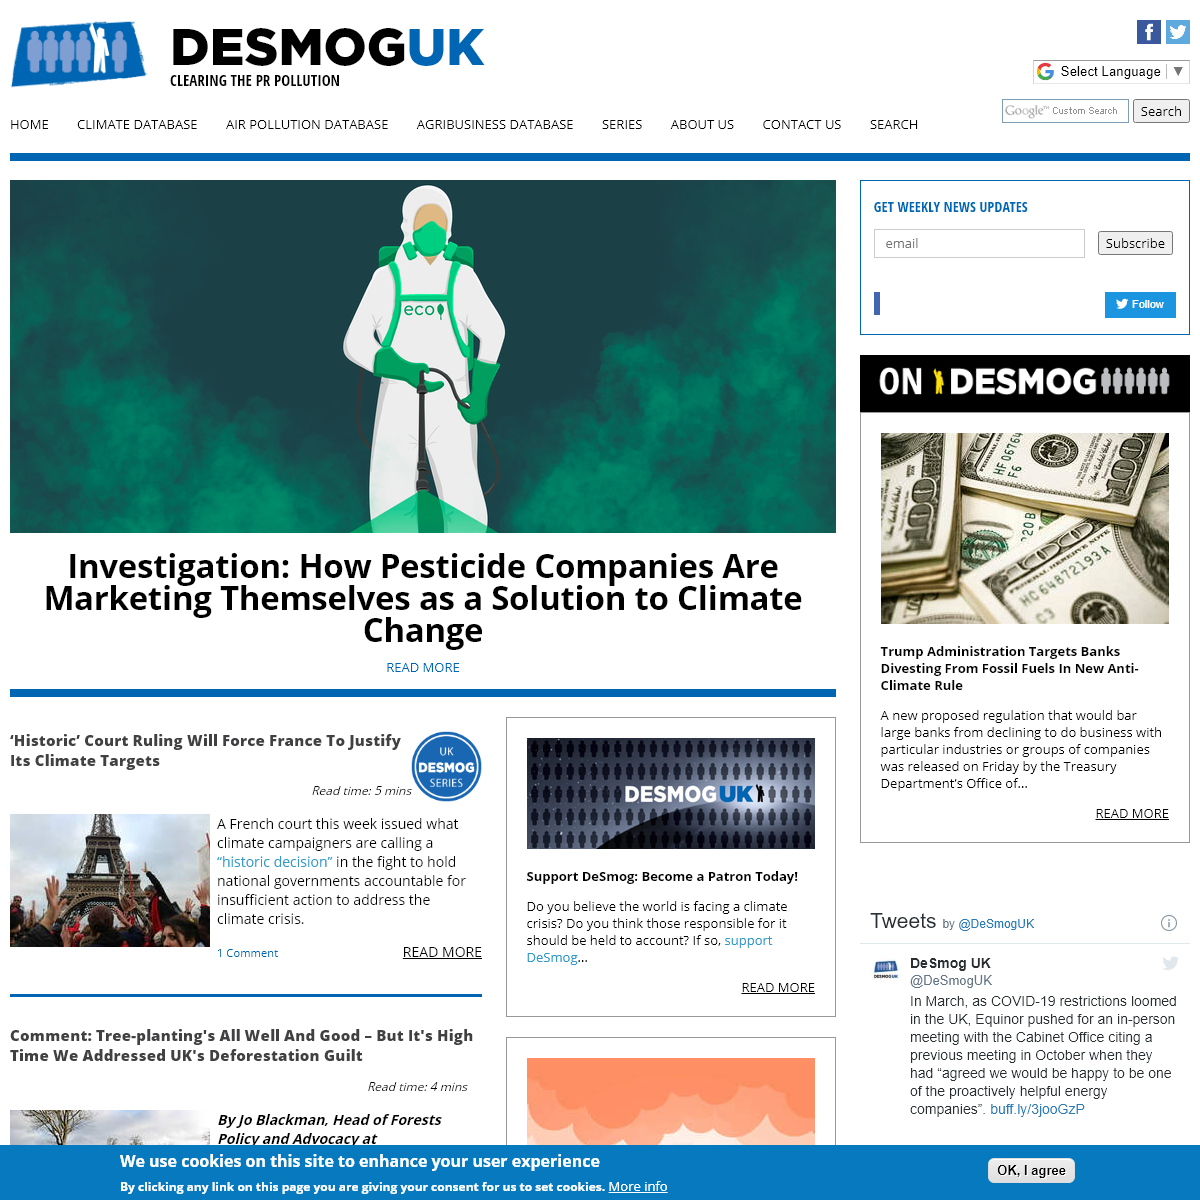 DeSmog UK - Clearing the PR Pollution